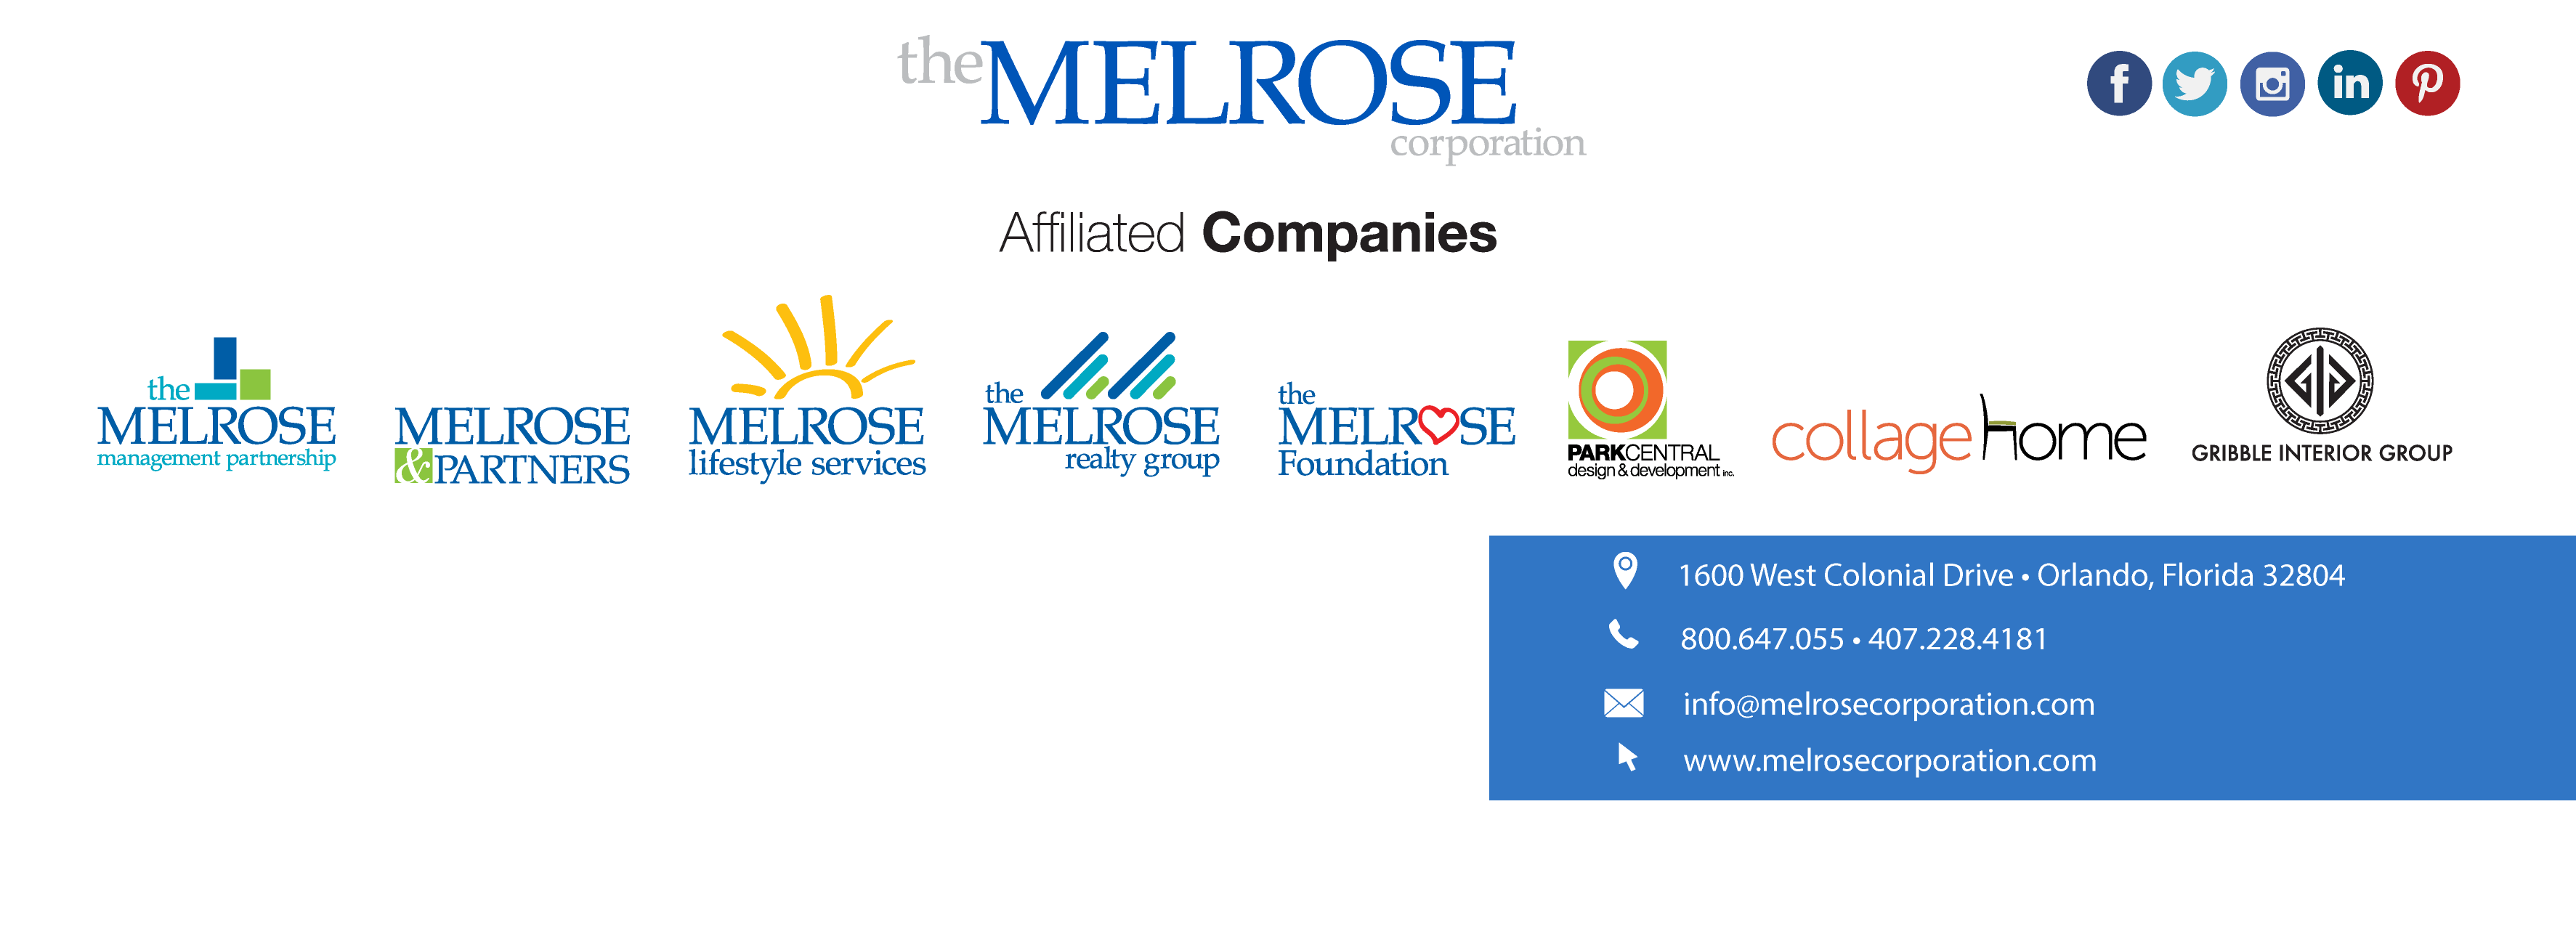 The Melrose Foundation